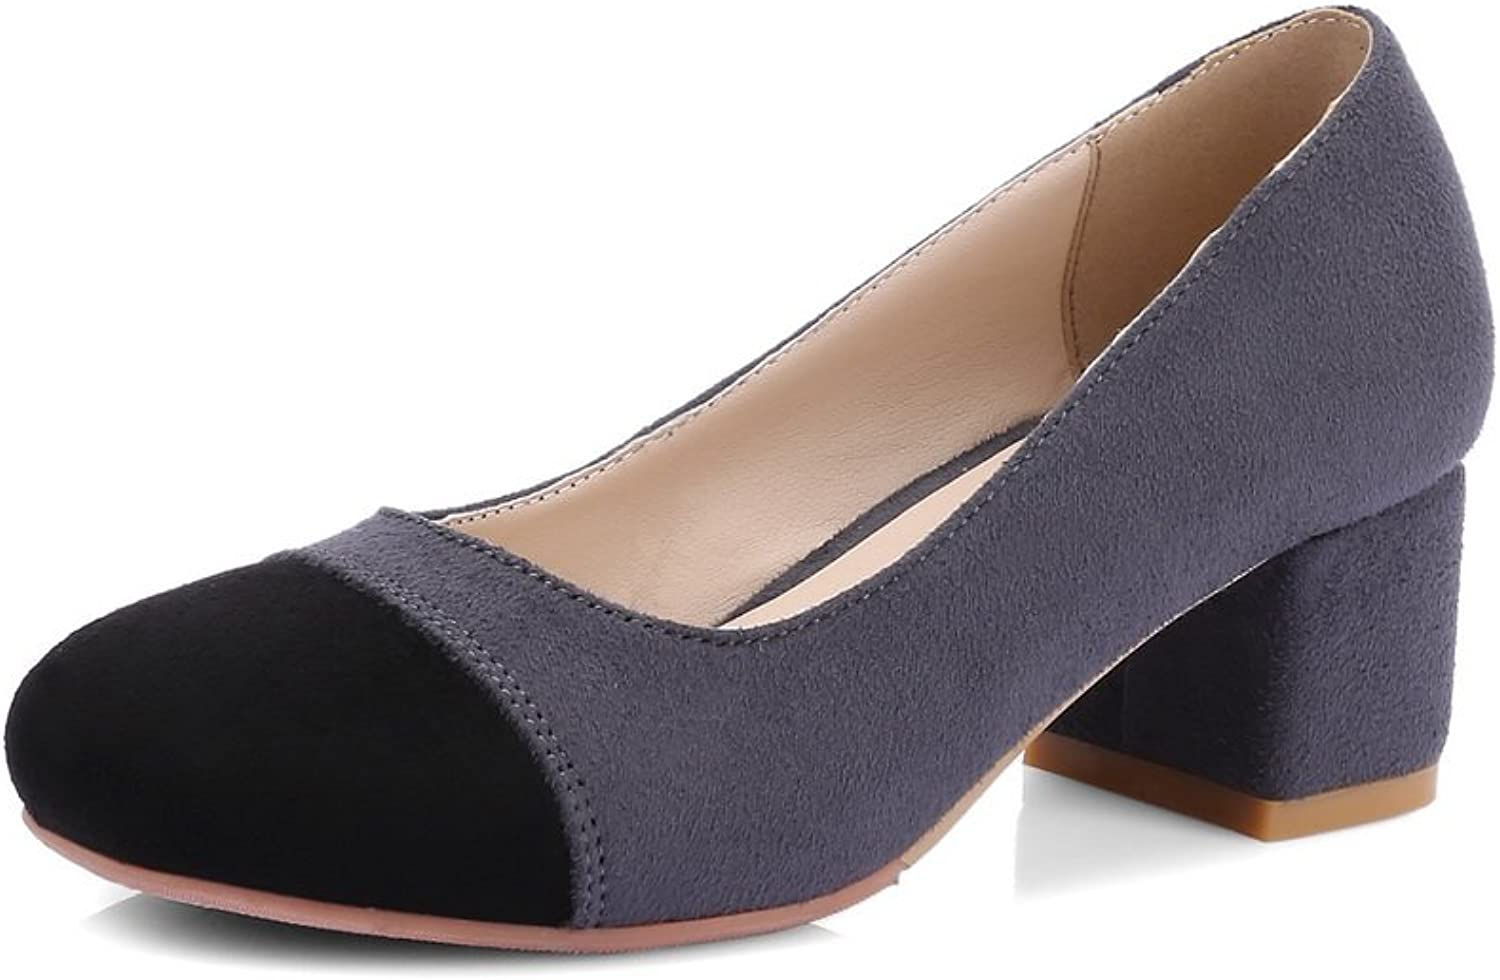 BalaMasa Ladies Chunky Heels Low-Cut Uppers No-Closure Suede Pumps shoes